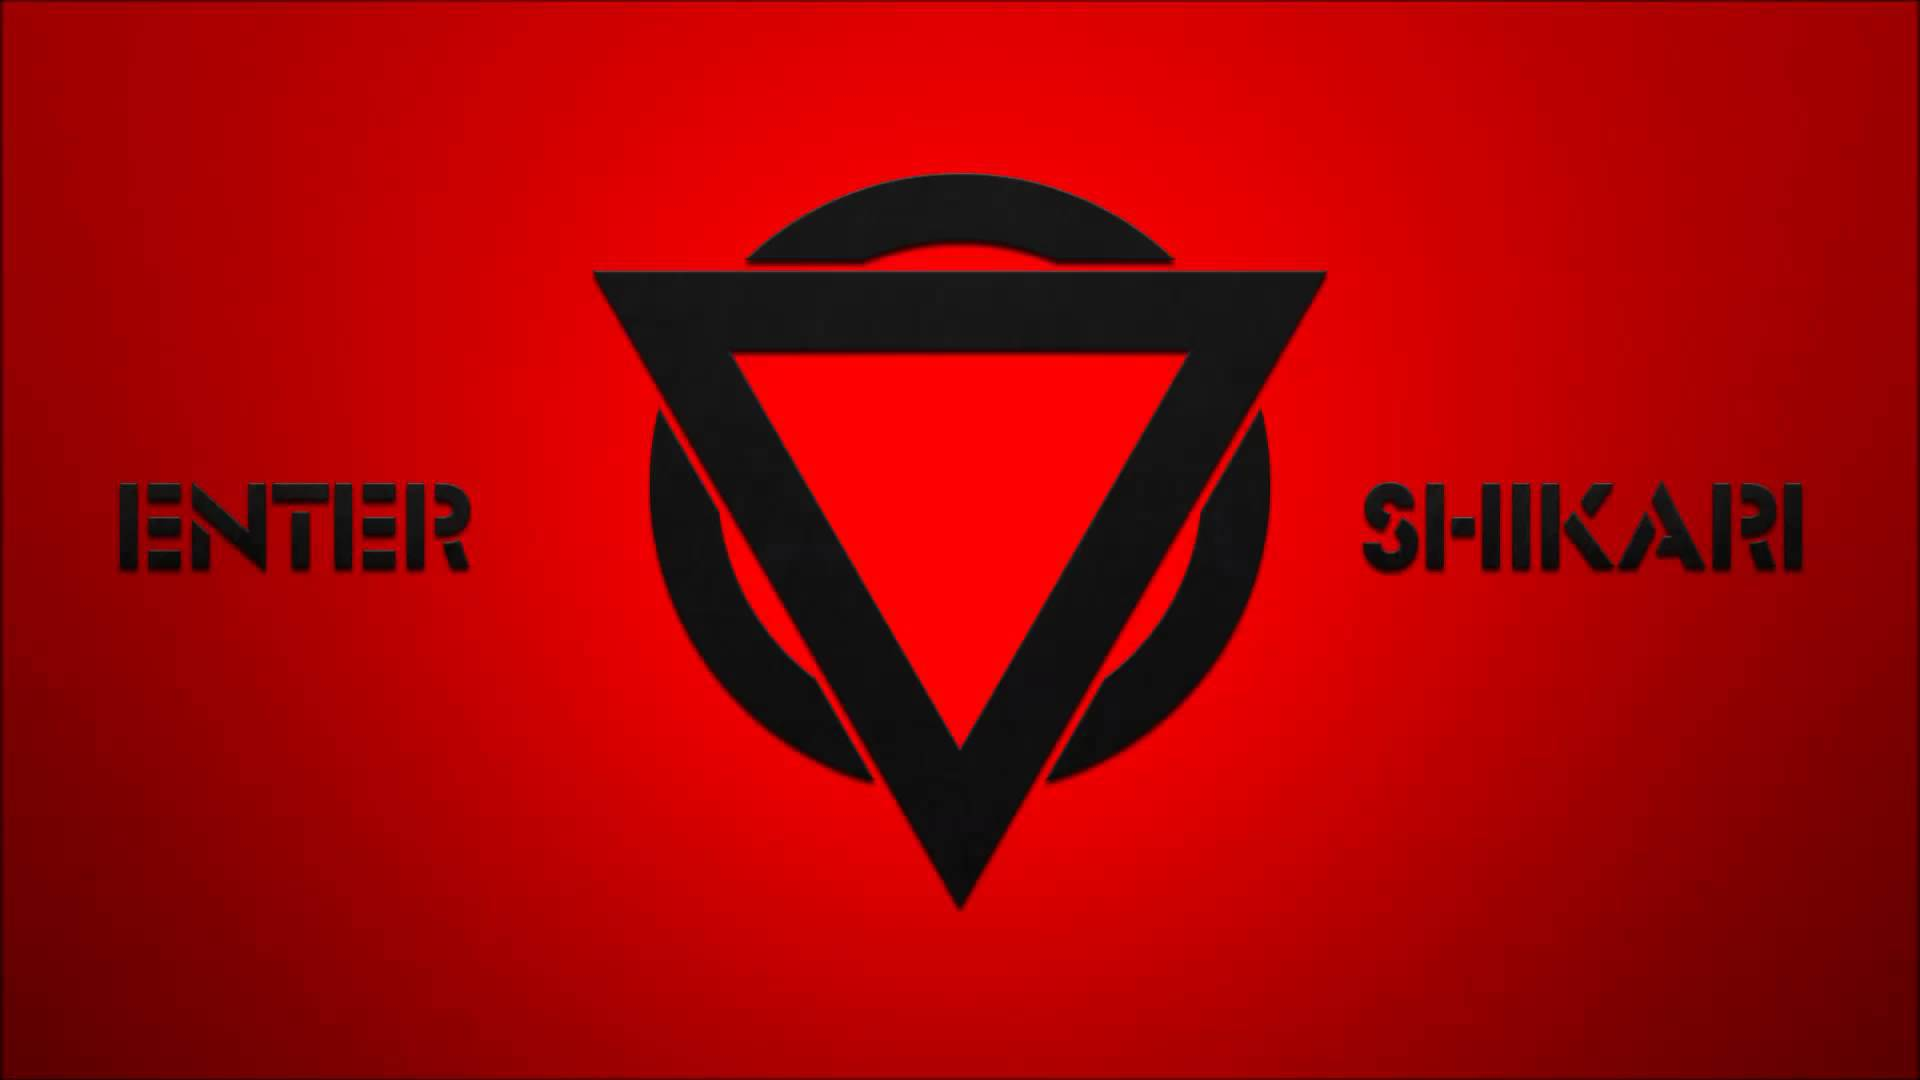 Enter Shikari Hd Desktop